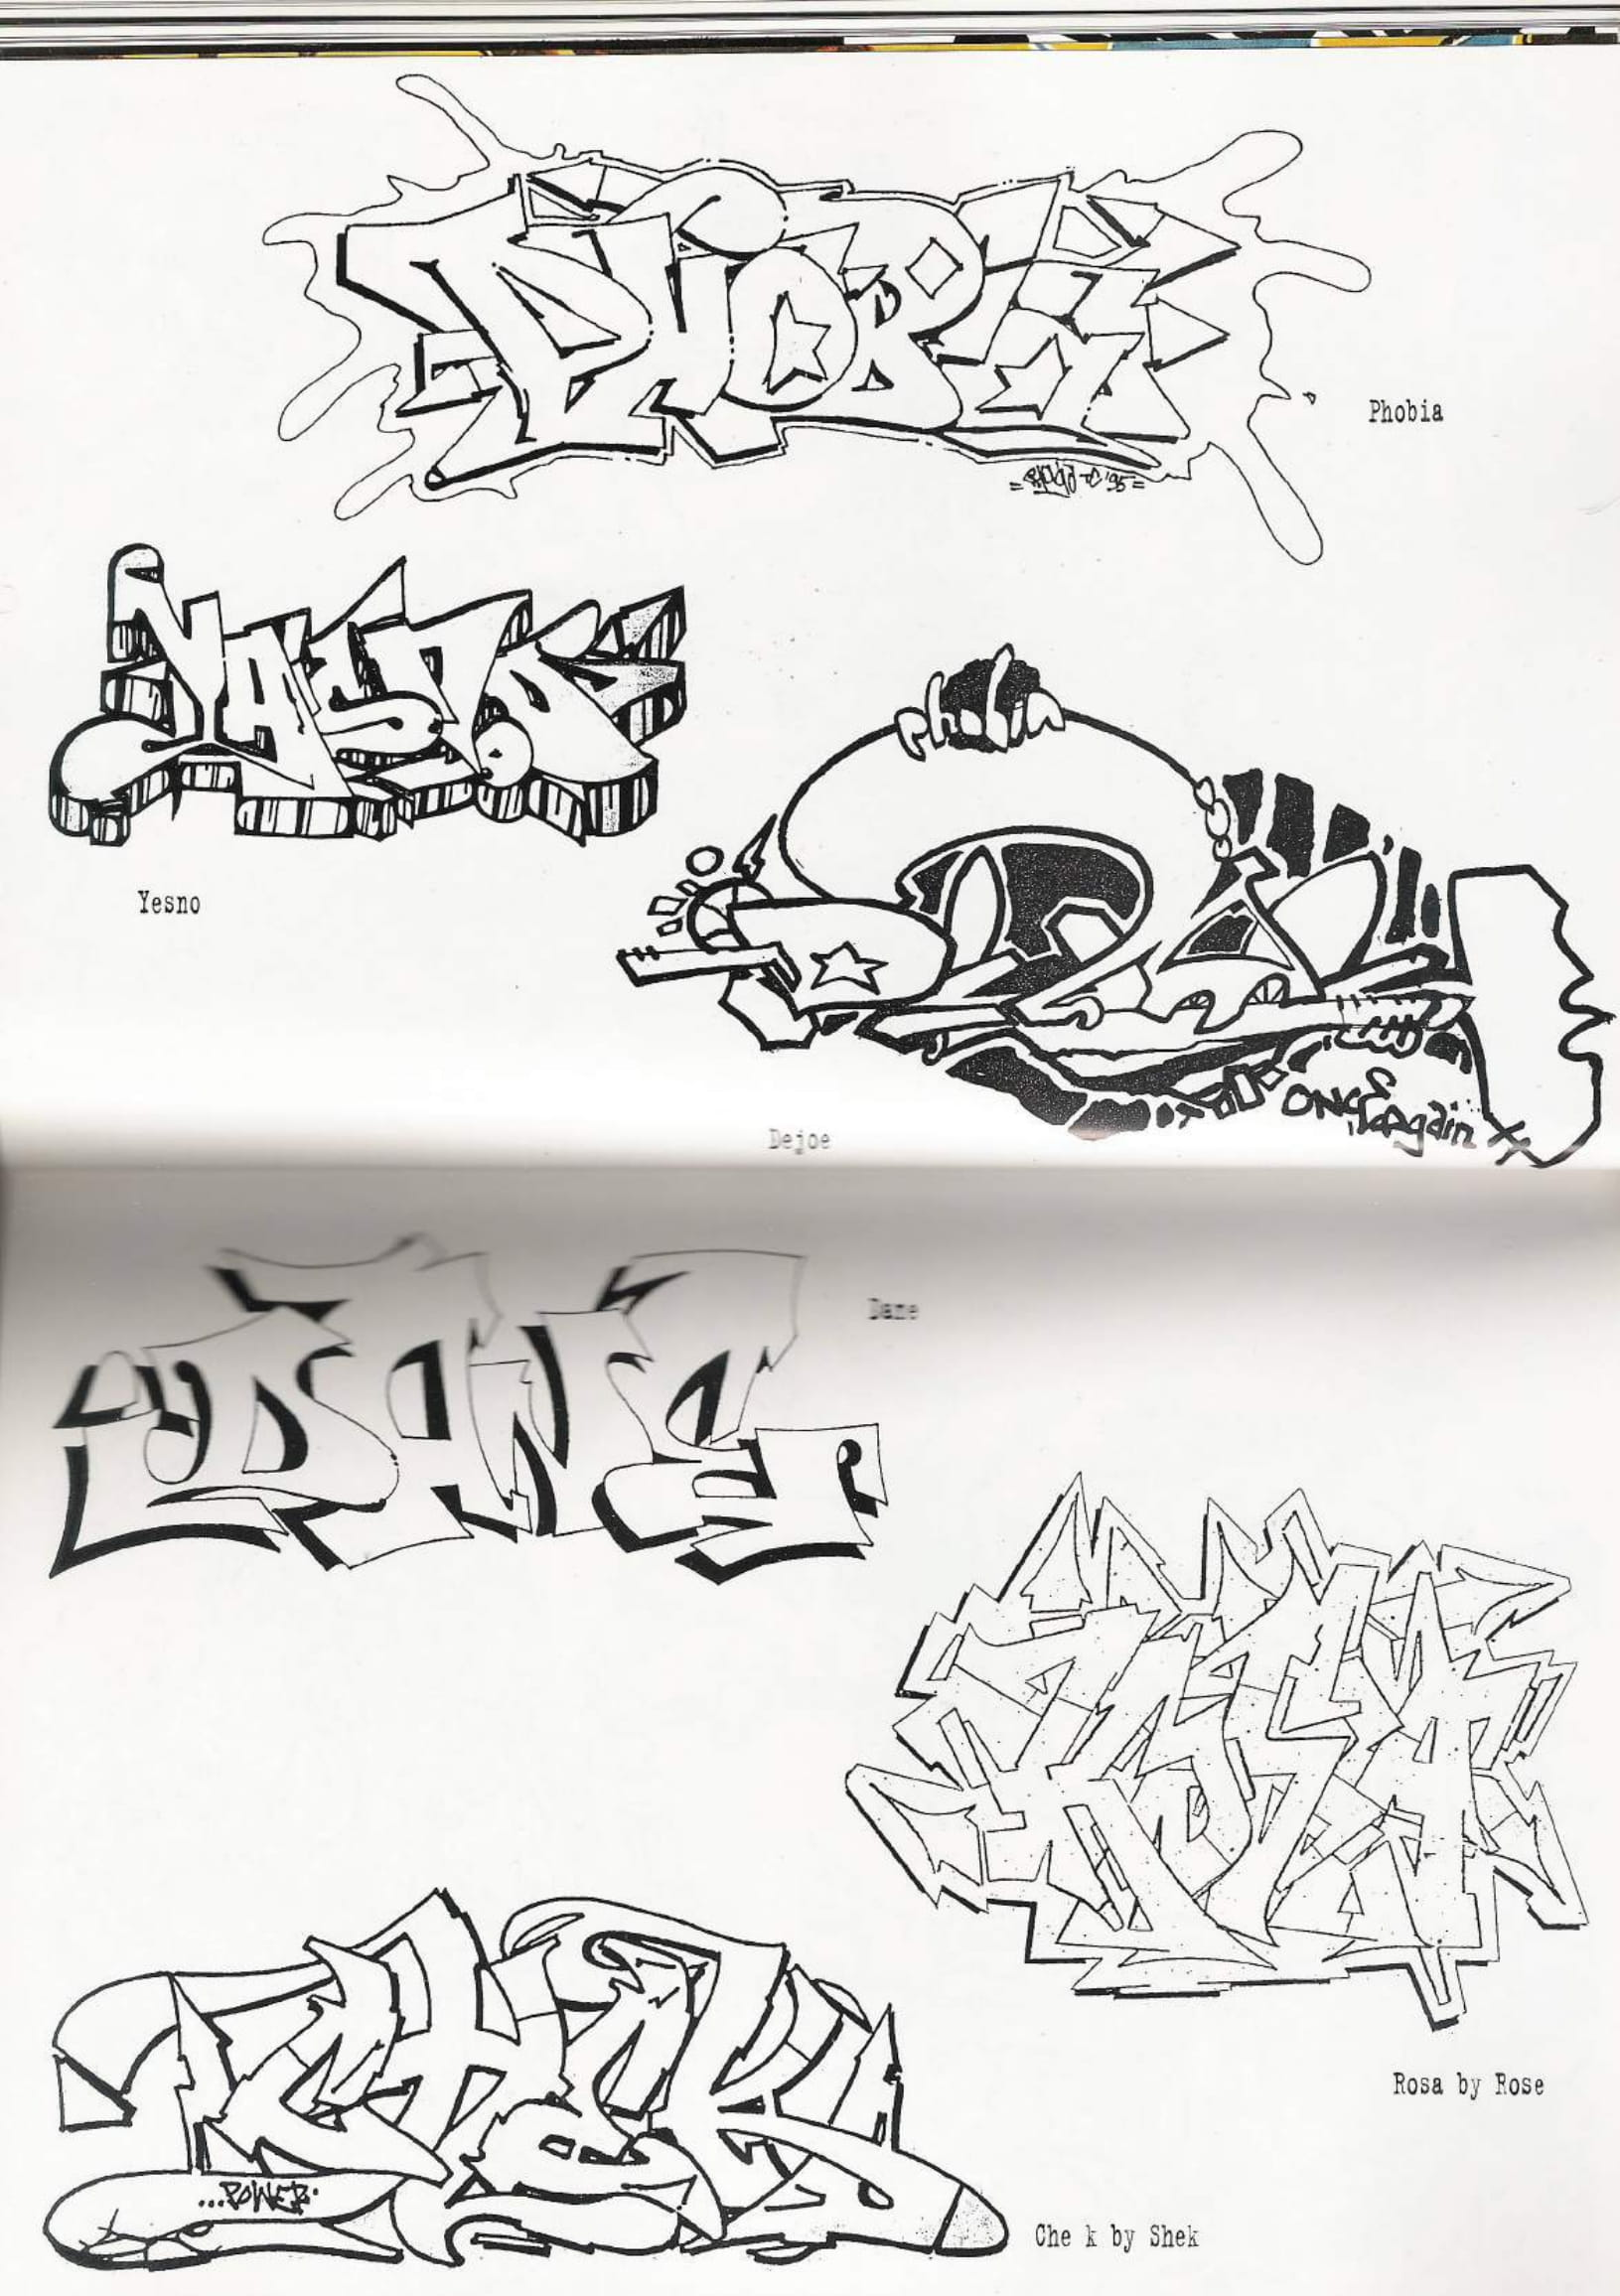 Backjumps.-.Sketchbook-AEROHOLICS-compressed-19.jpg